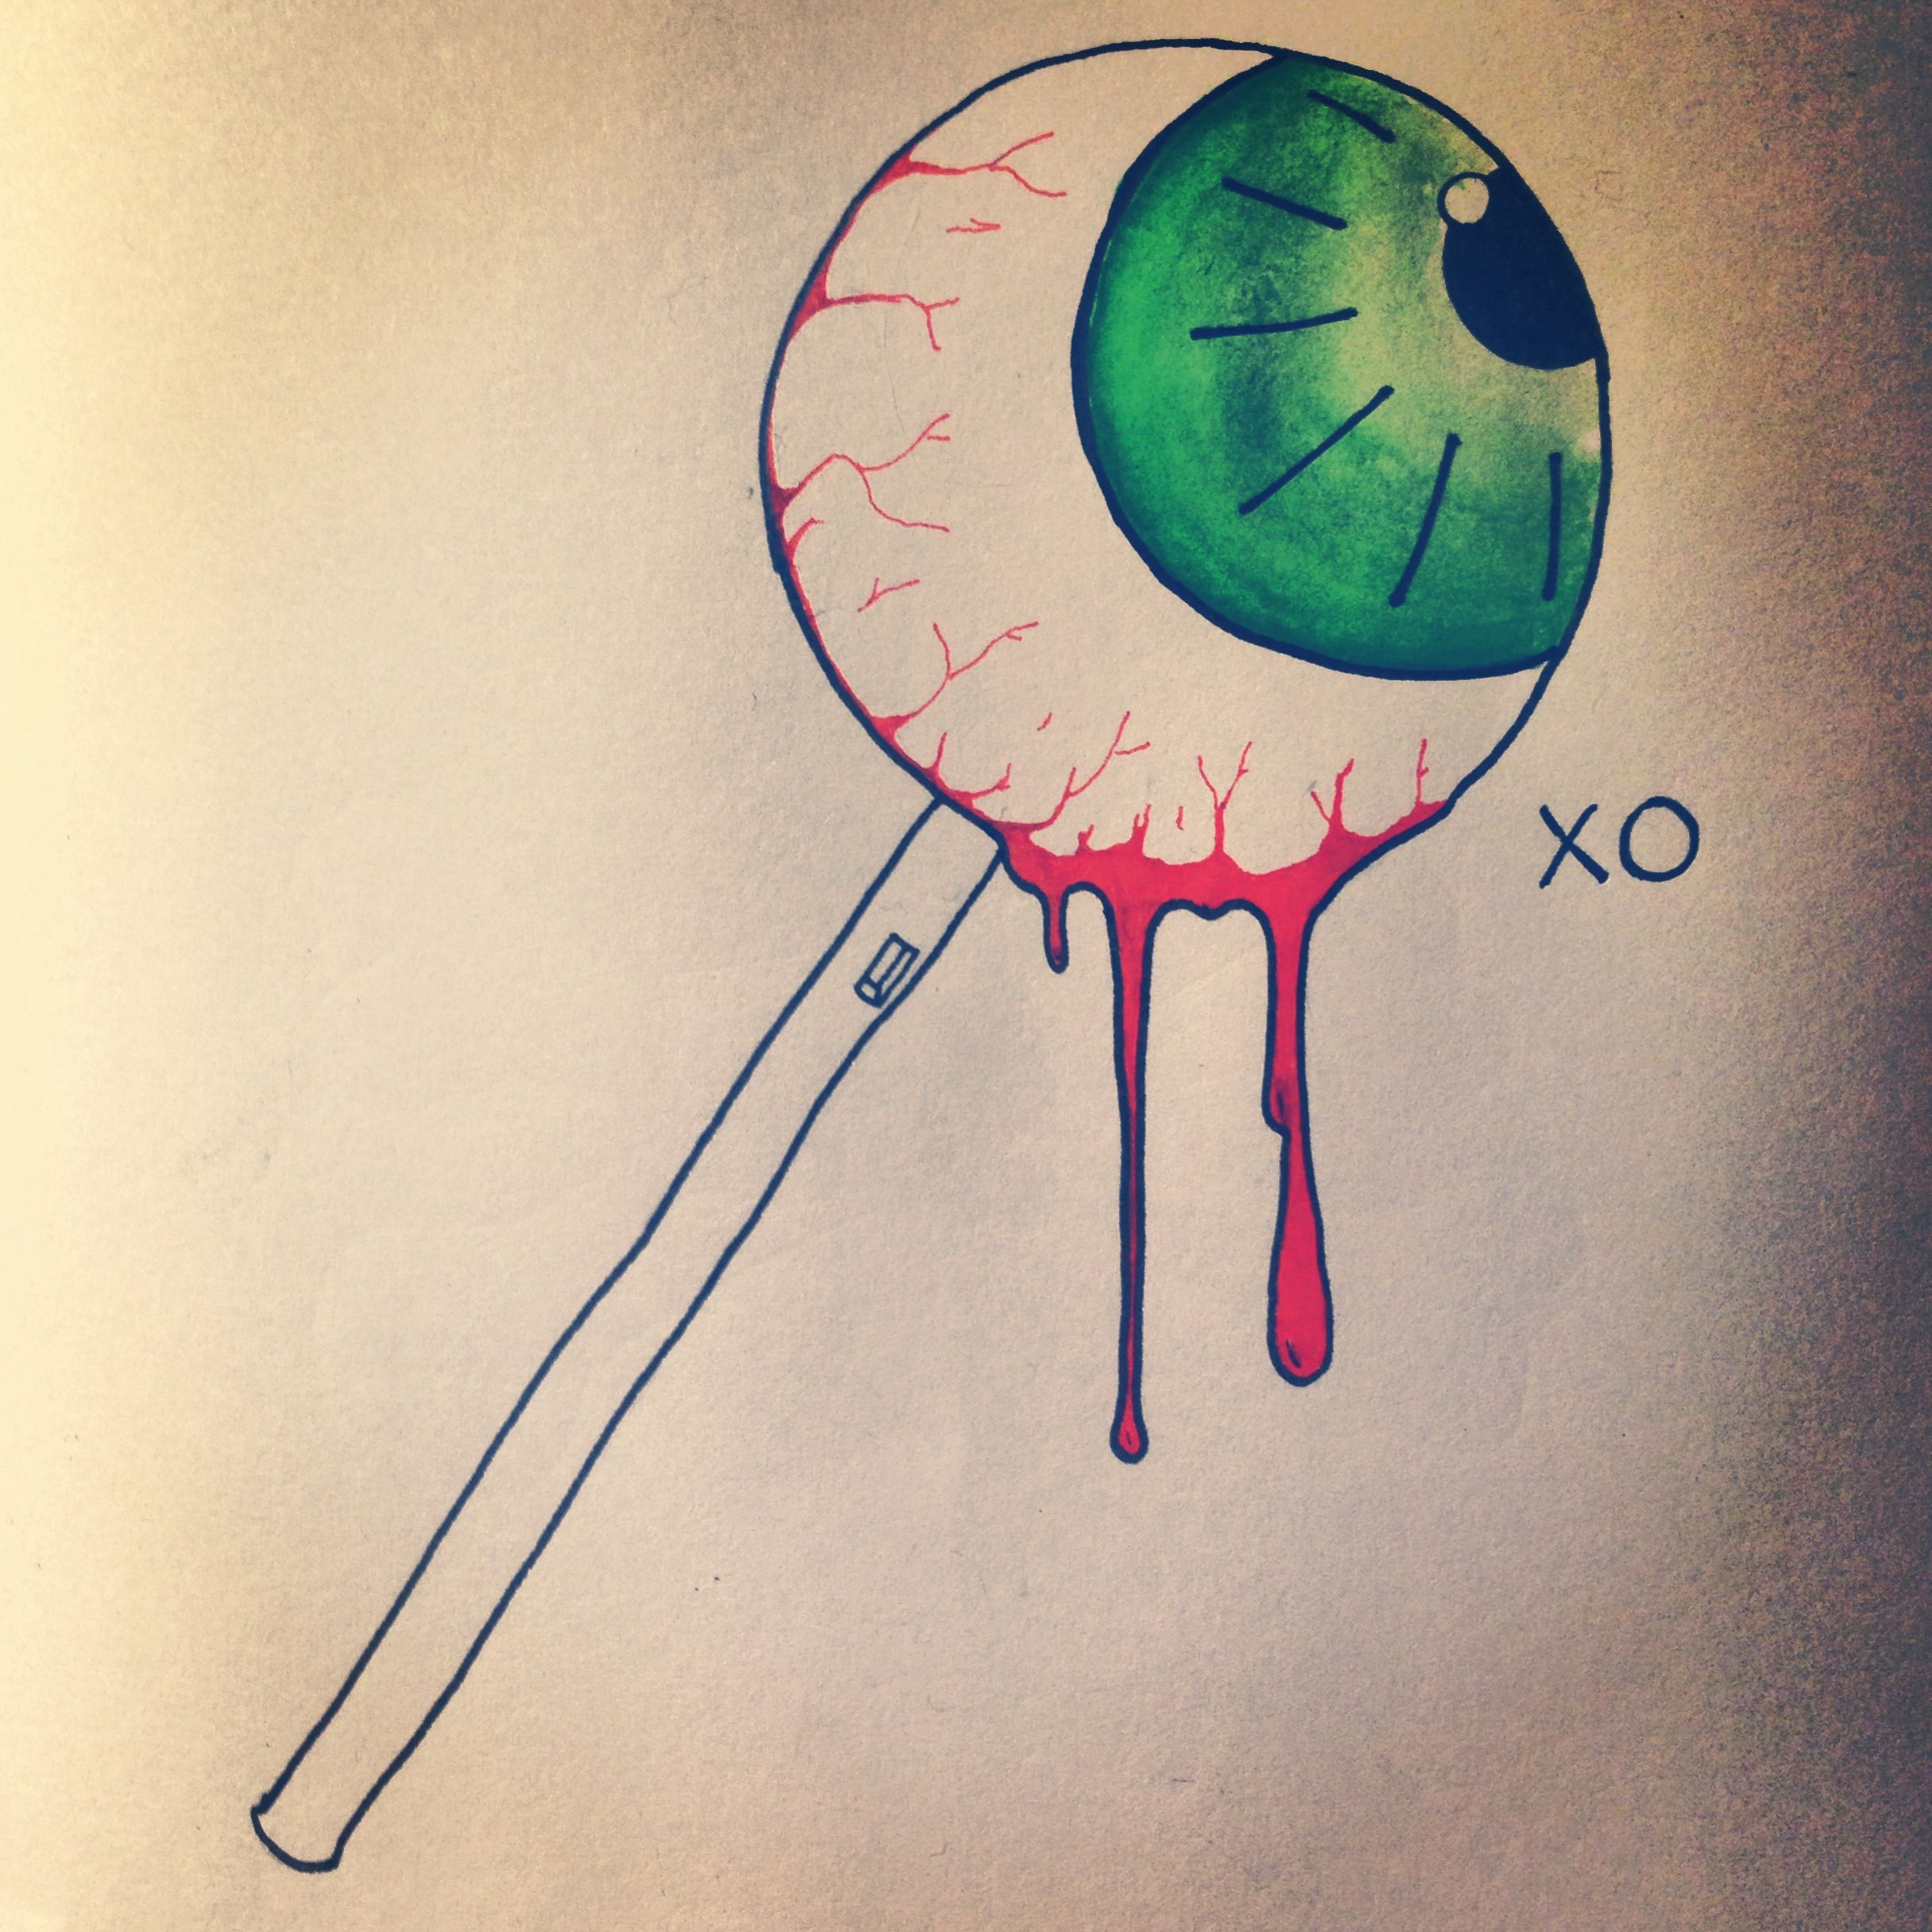 Eyeball Lollipop Tattoo Style Painting Justina Bisset Xo Art